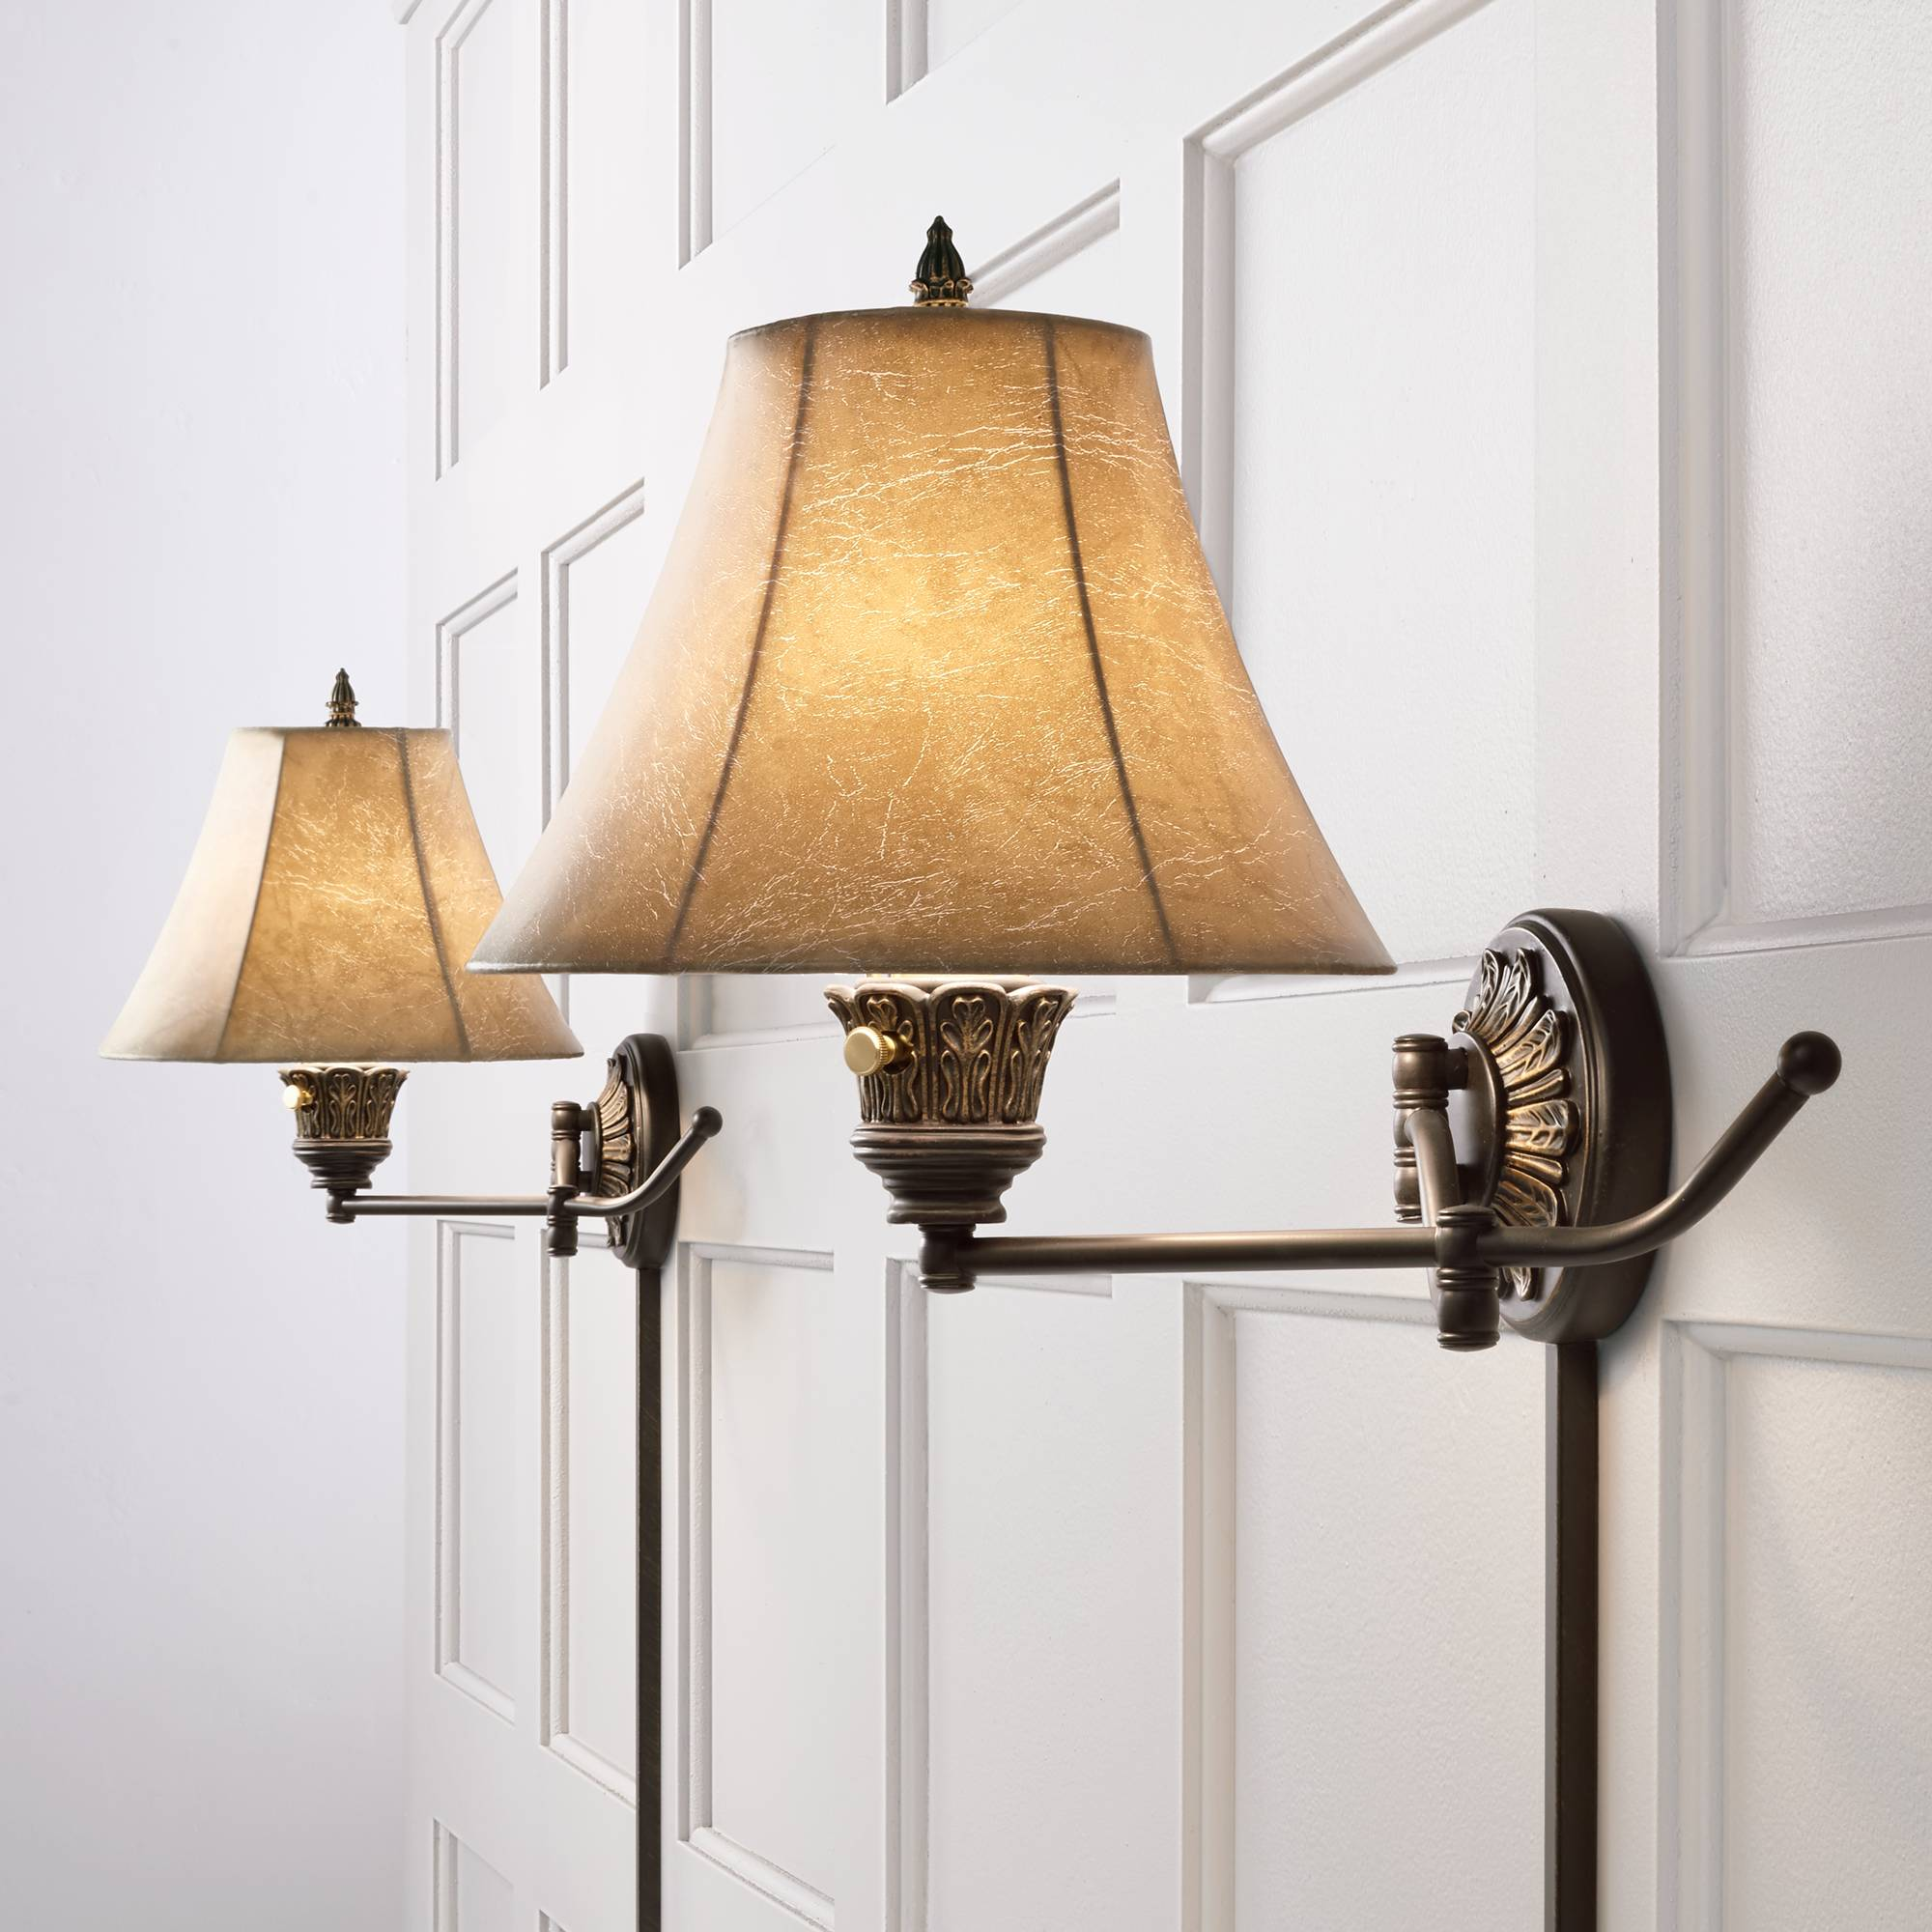 Details About Swing Arm Wall Lights Plug In Set Of 2 Lamps French Bronze For Bedroom Reading